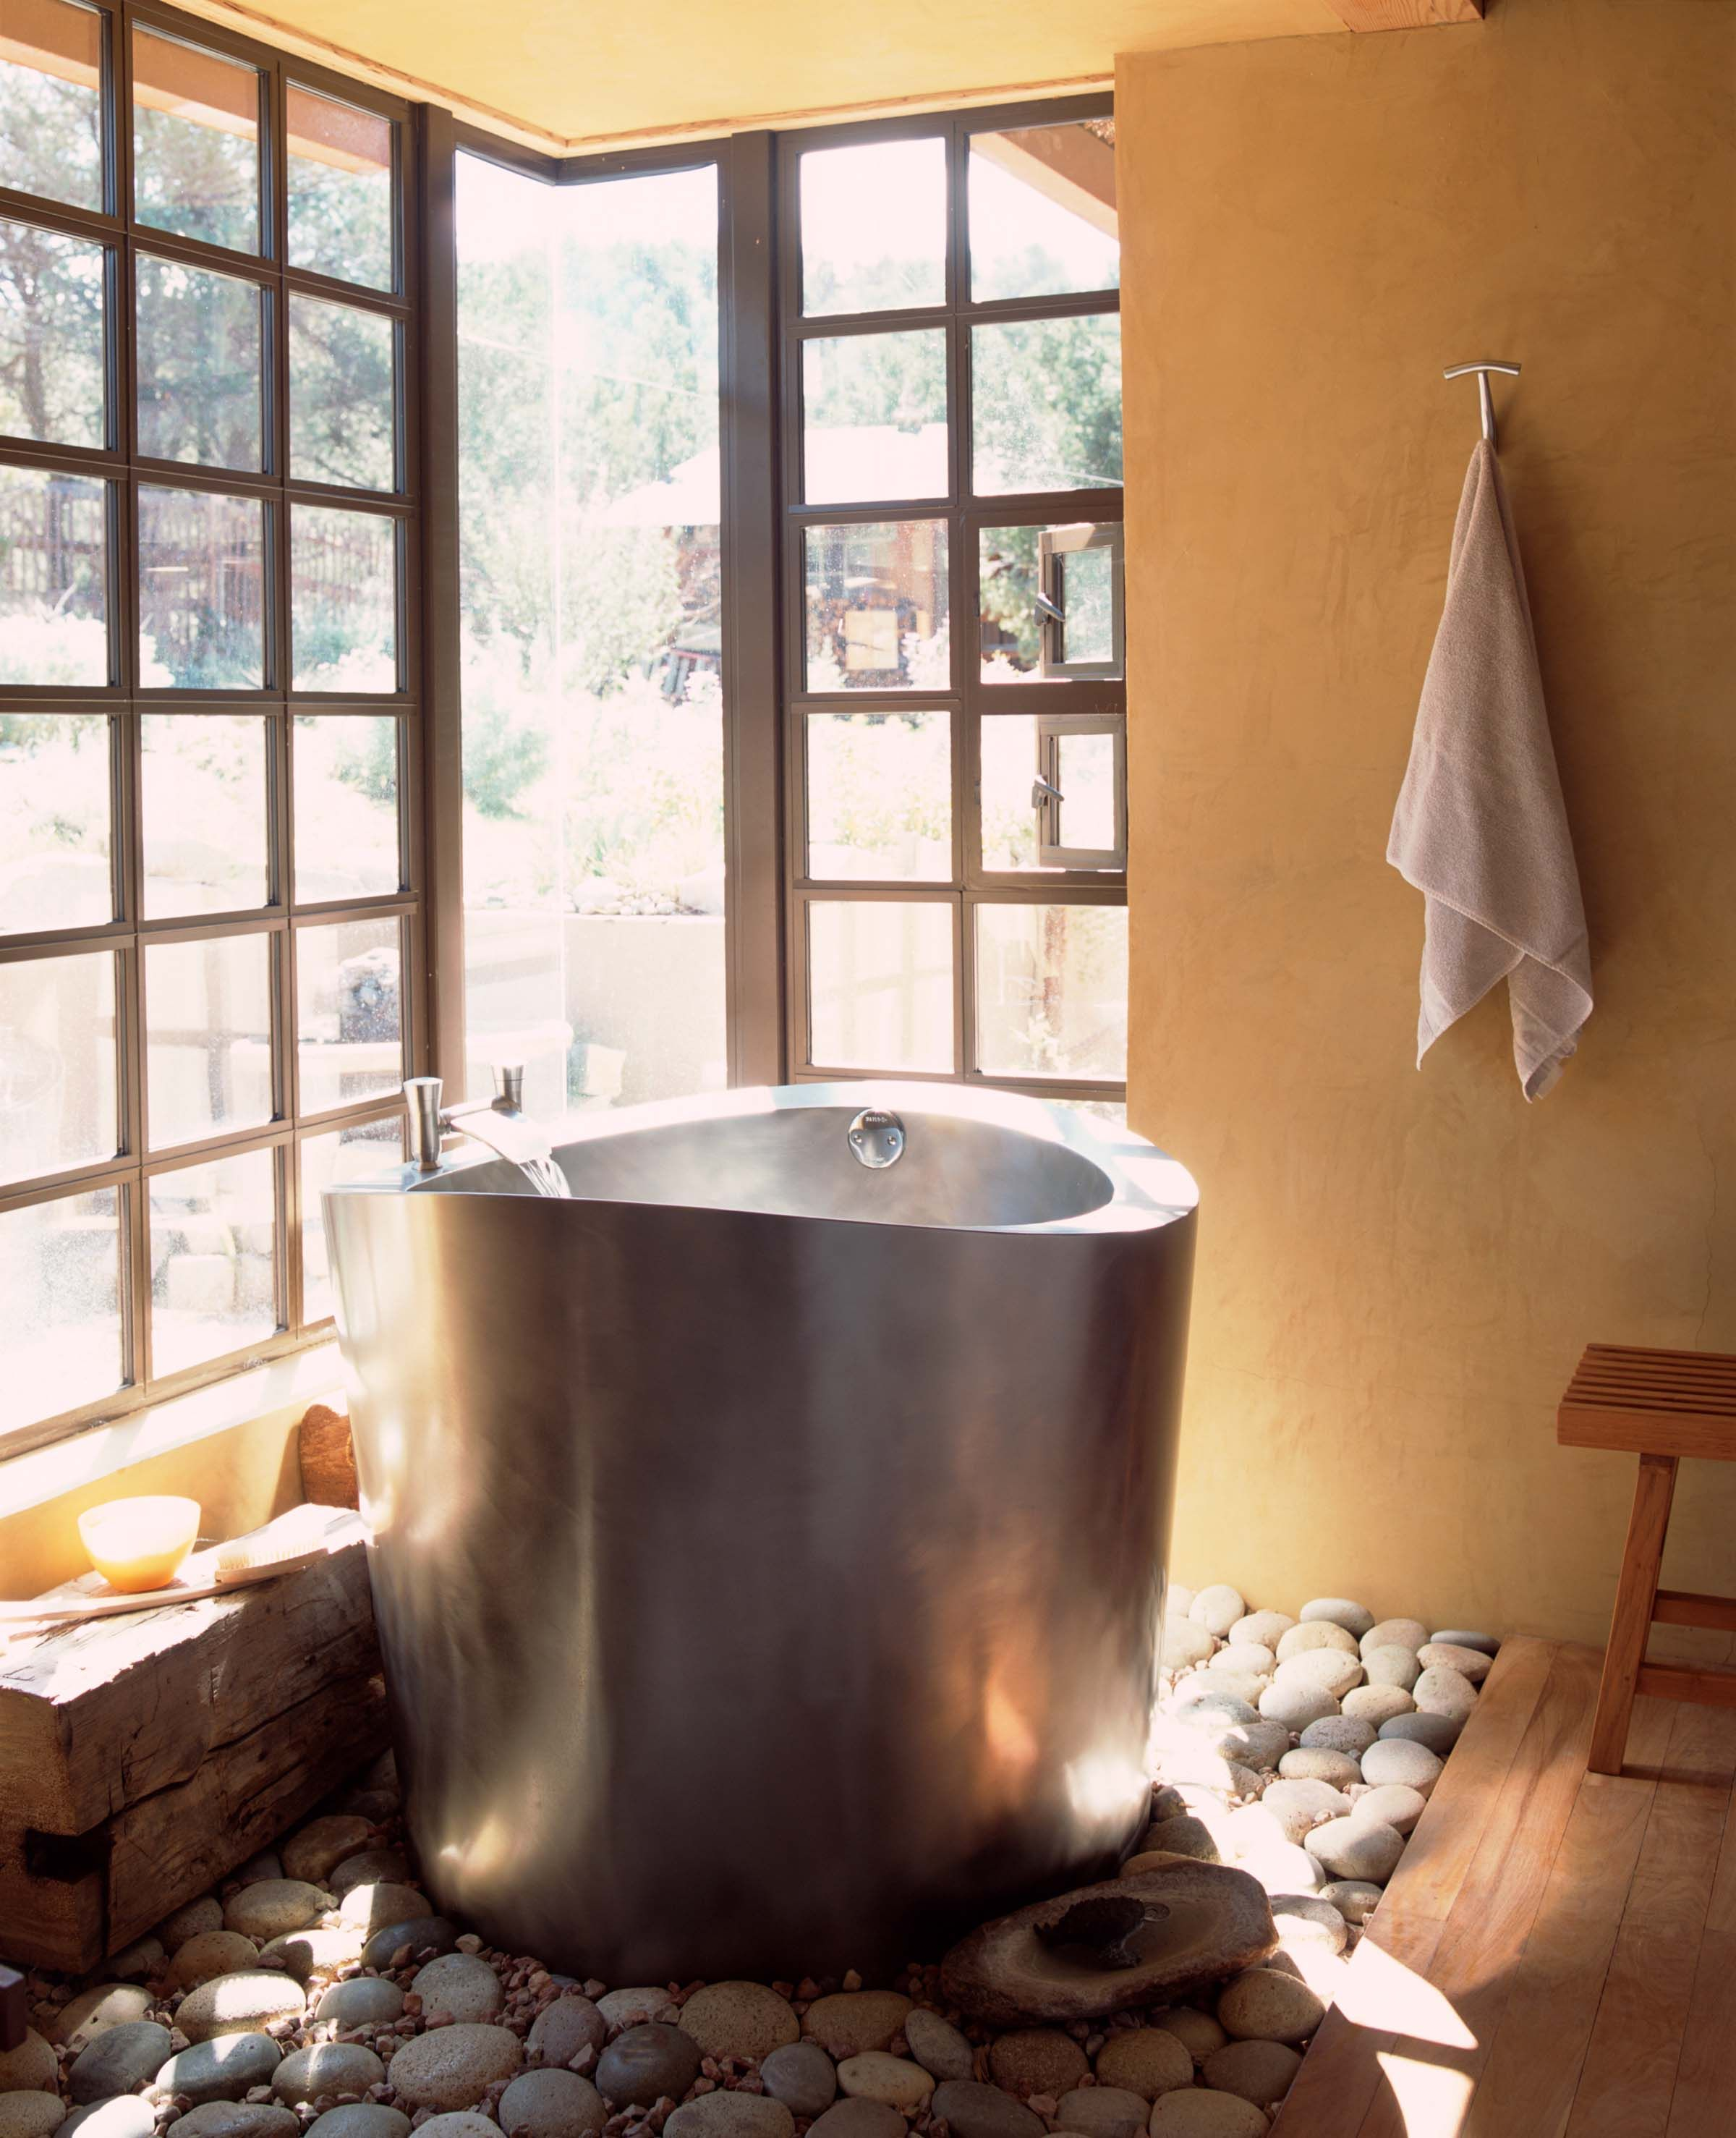 this japanese styled stainless steel ofuro tub is made for